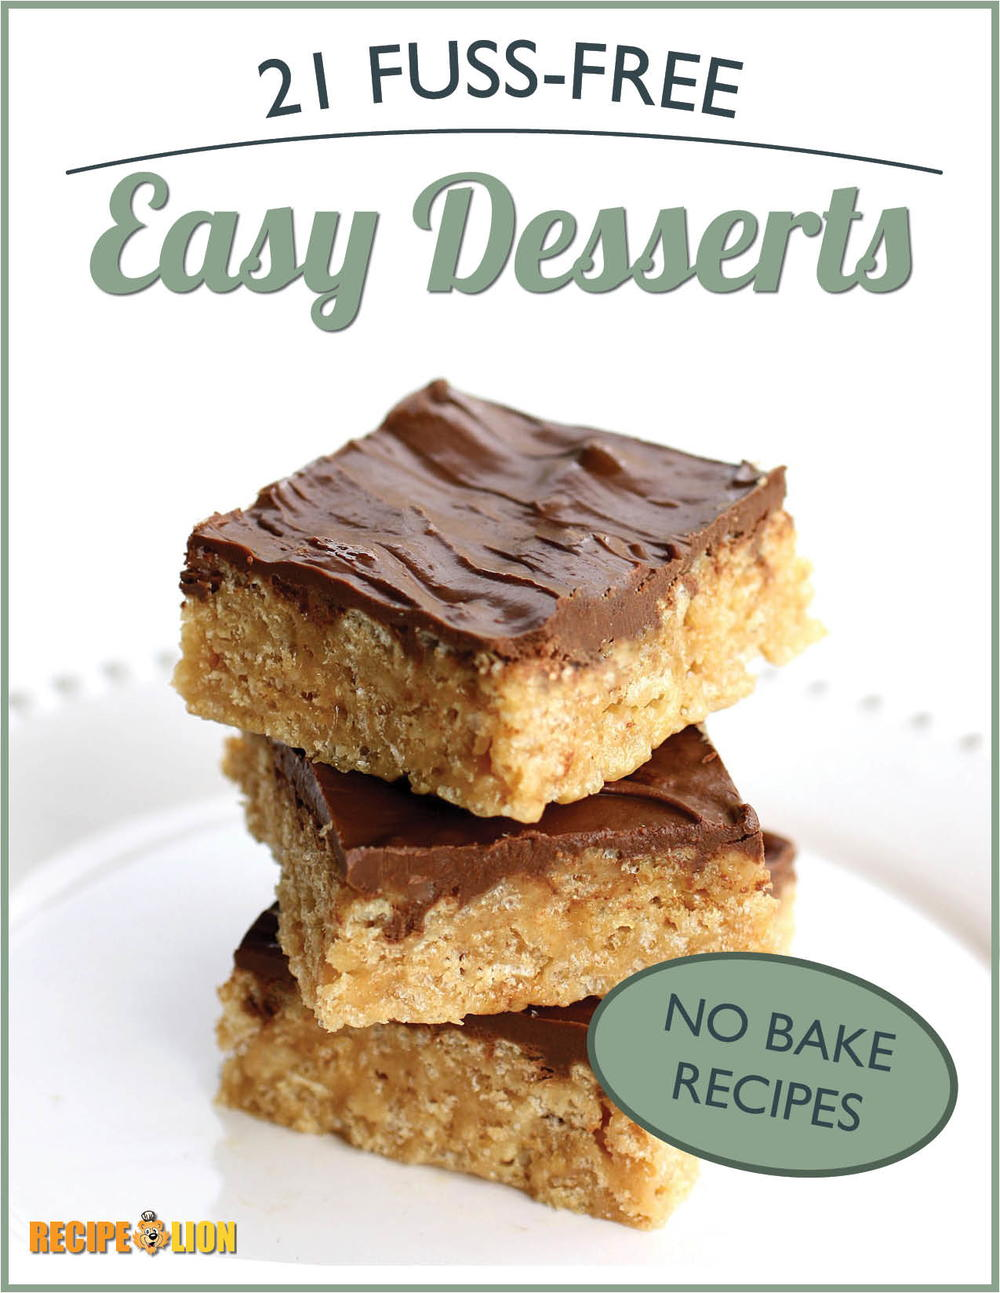 No Bake Recipes 21 Fuss Free Easy Desserts ECookbook